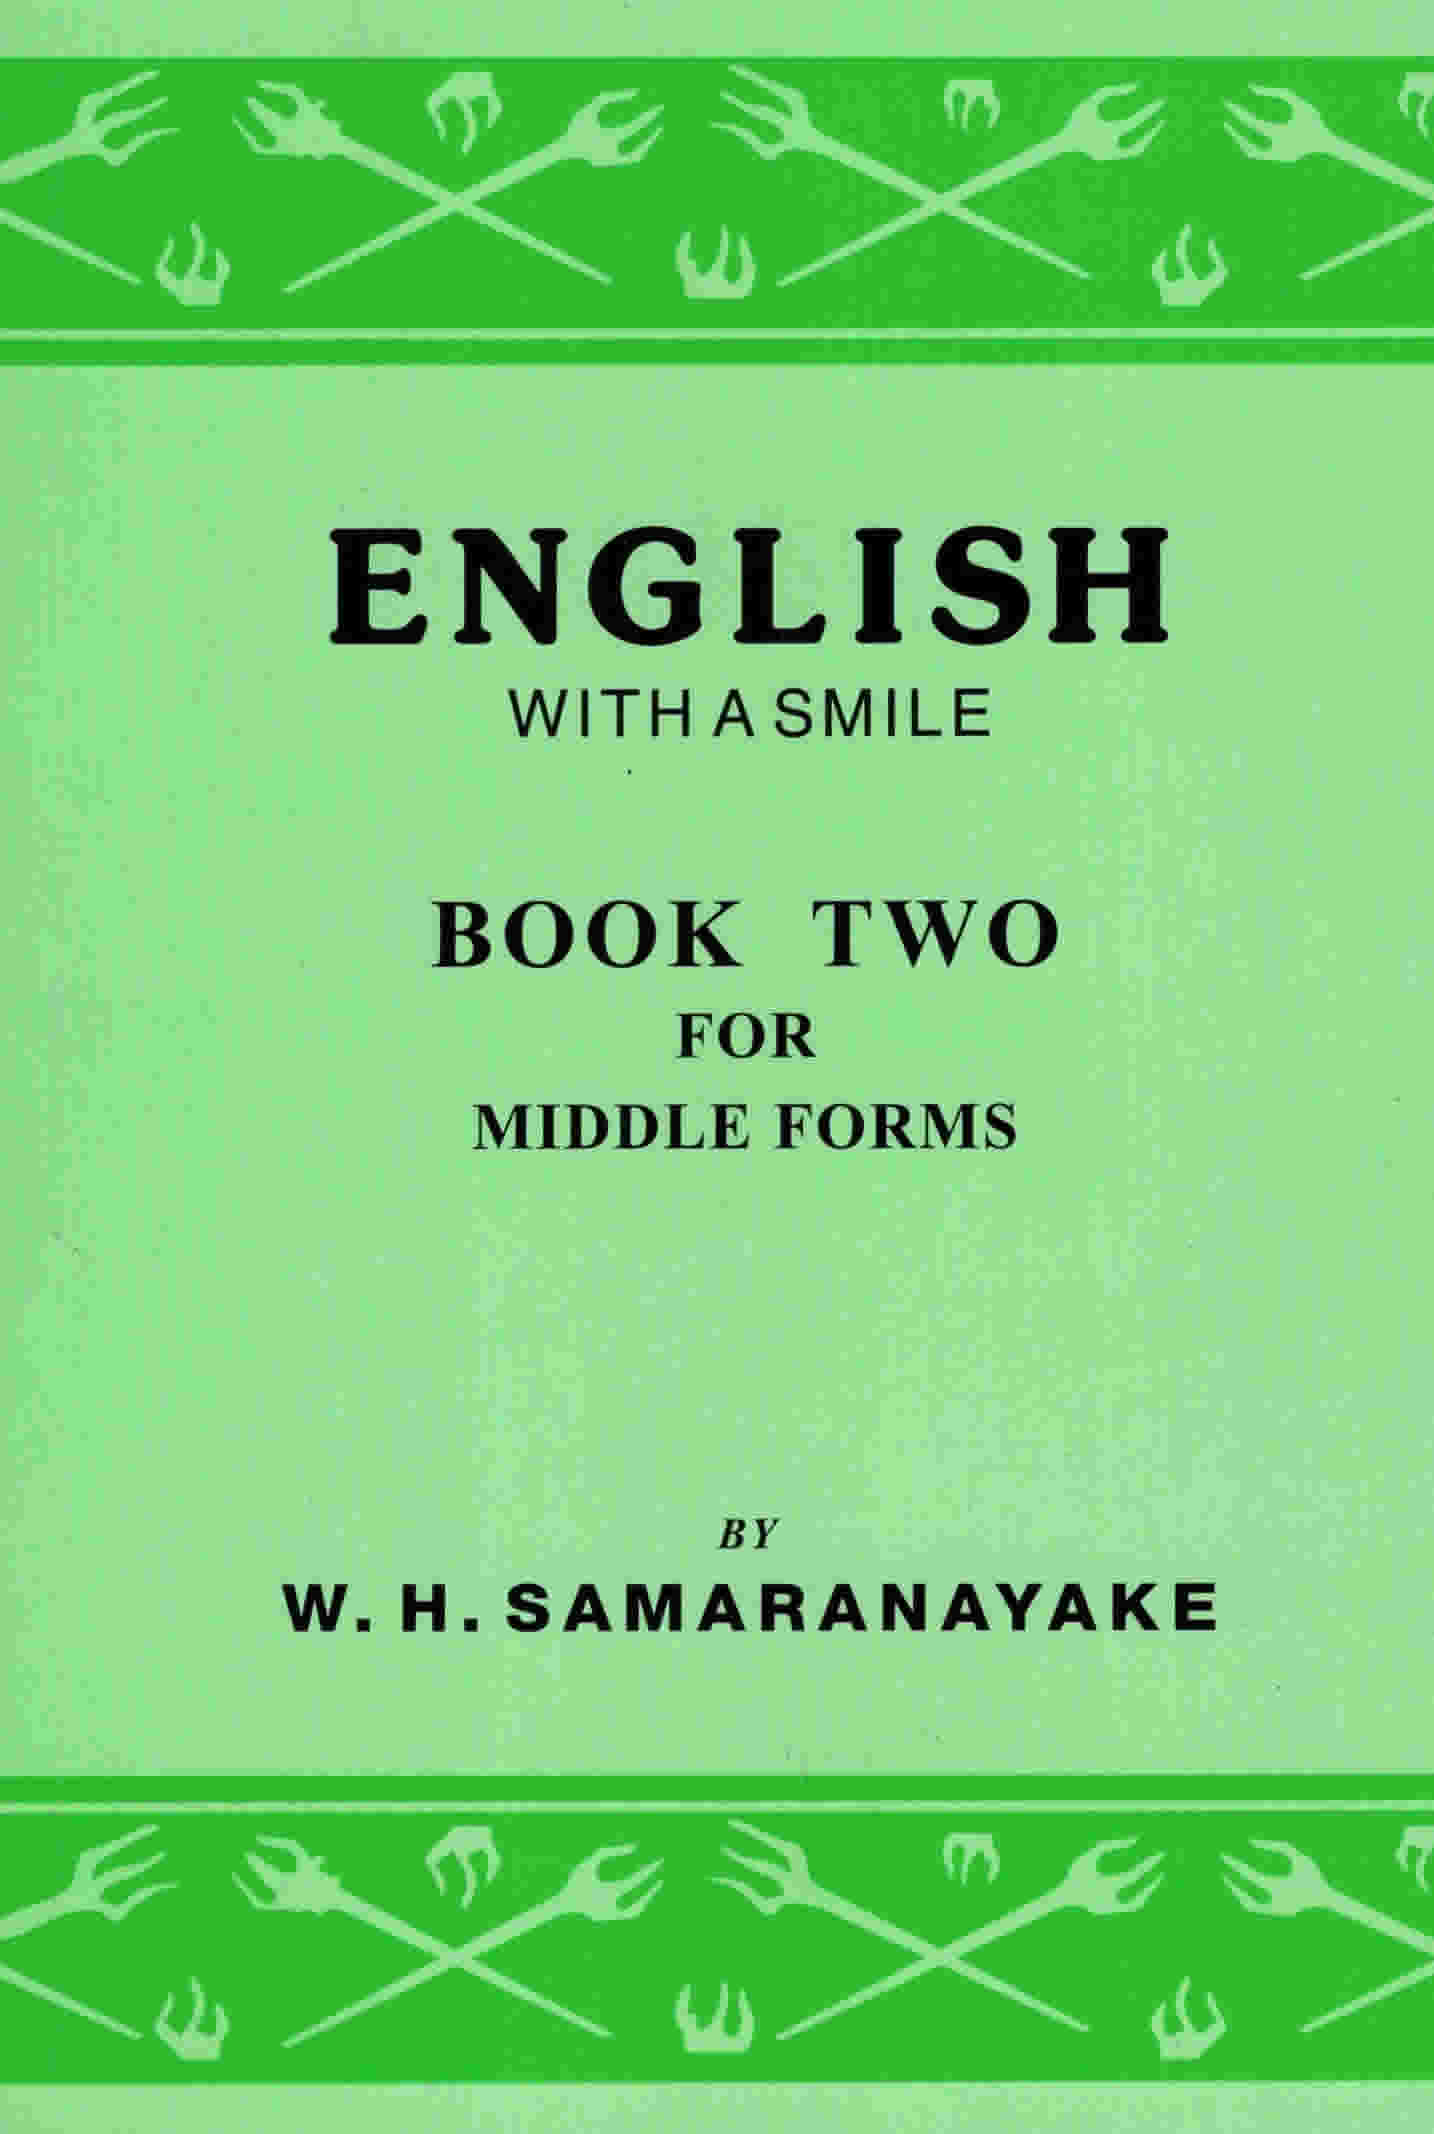 English With a Smile Book Two